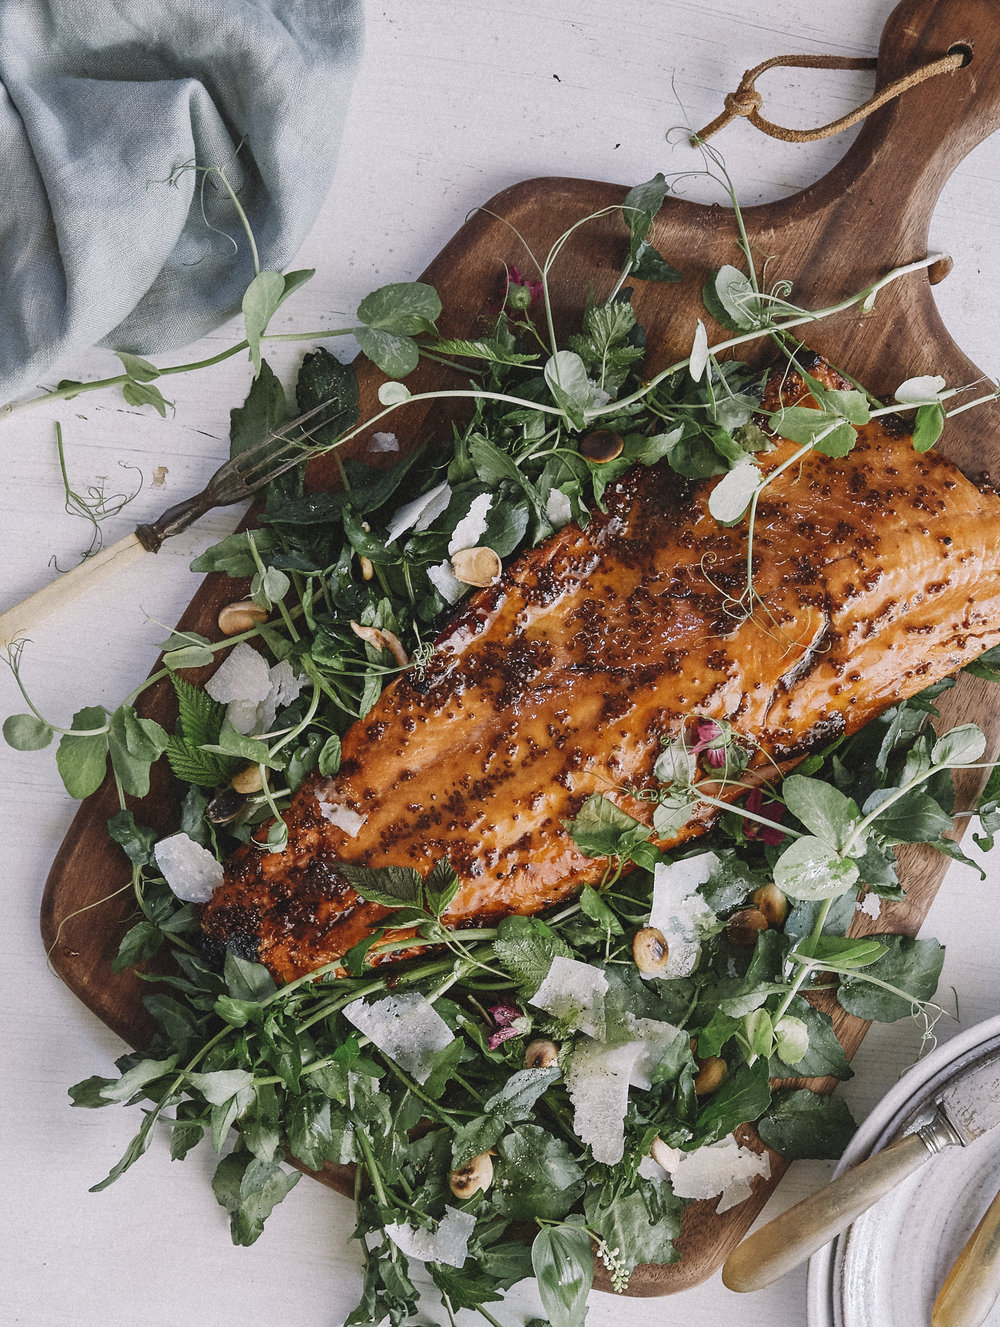 Wild Alaskan Copper River Salmon basted in Whole-Grain Mustard and our own Big Leaf Maple Syrup over a salad of foraged things (details below), & pea tendrils from the garden.